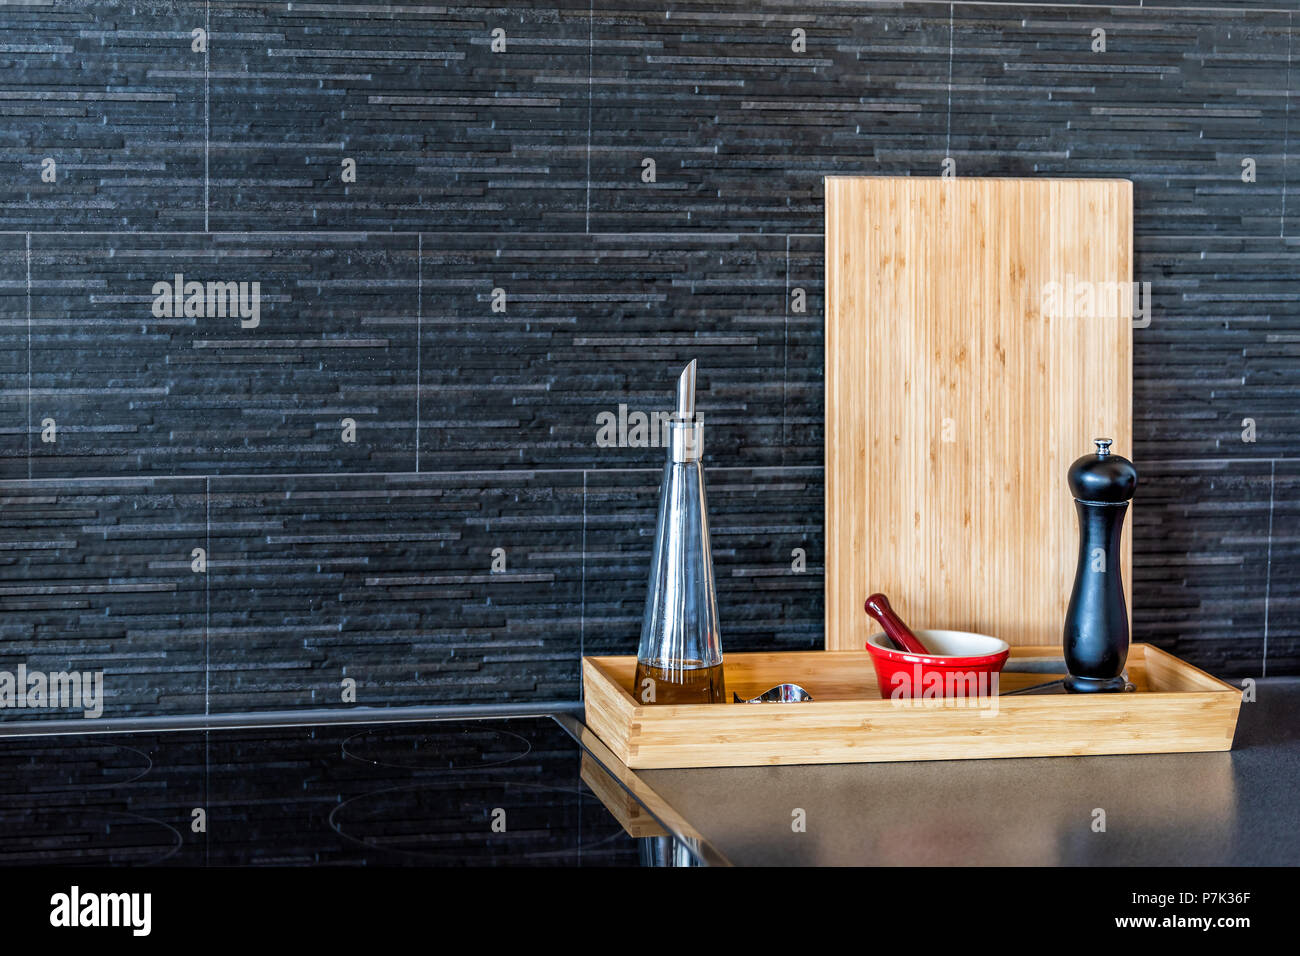 Tile Backsplash Stock Photos & Tile Backsplash Stock Images - Alamy